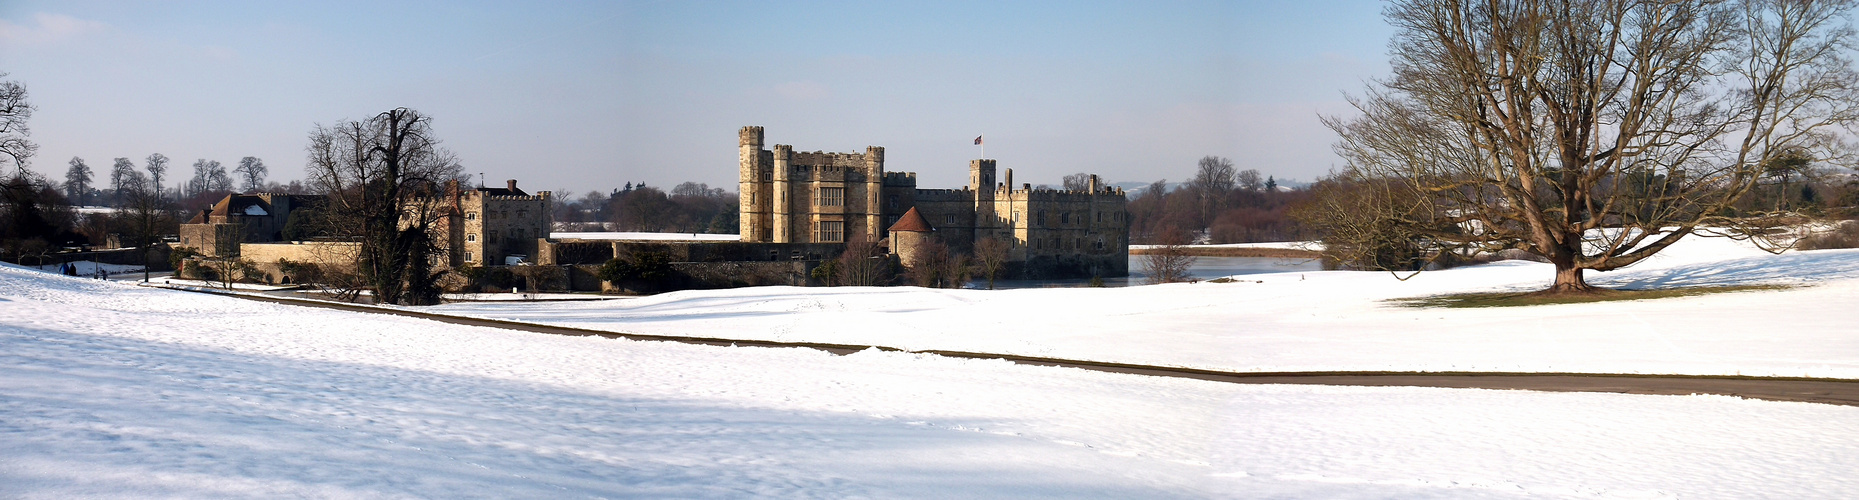 Leeds Castle - Welcome to England